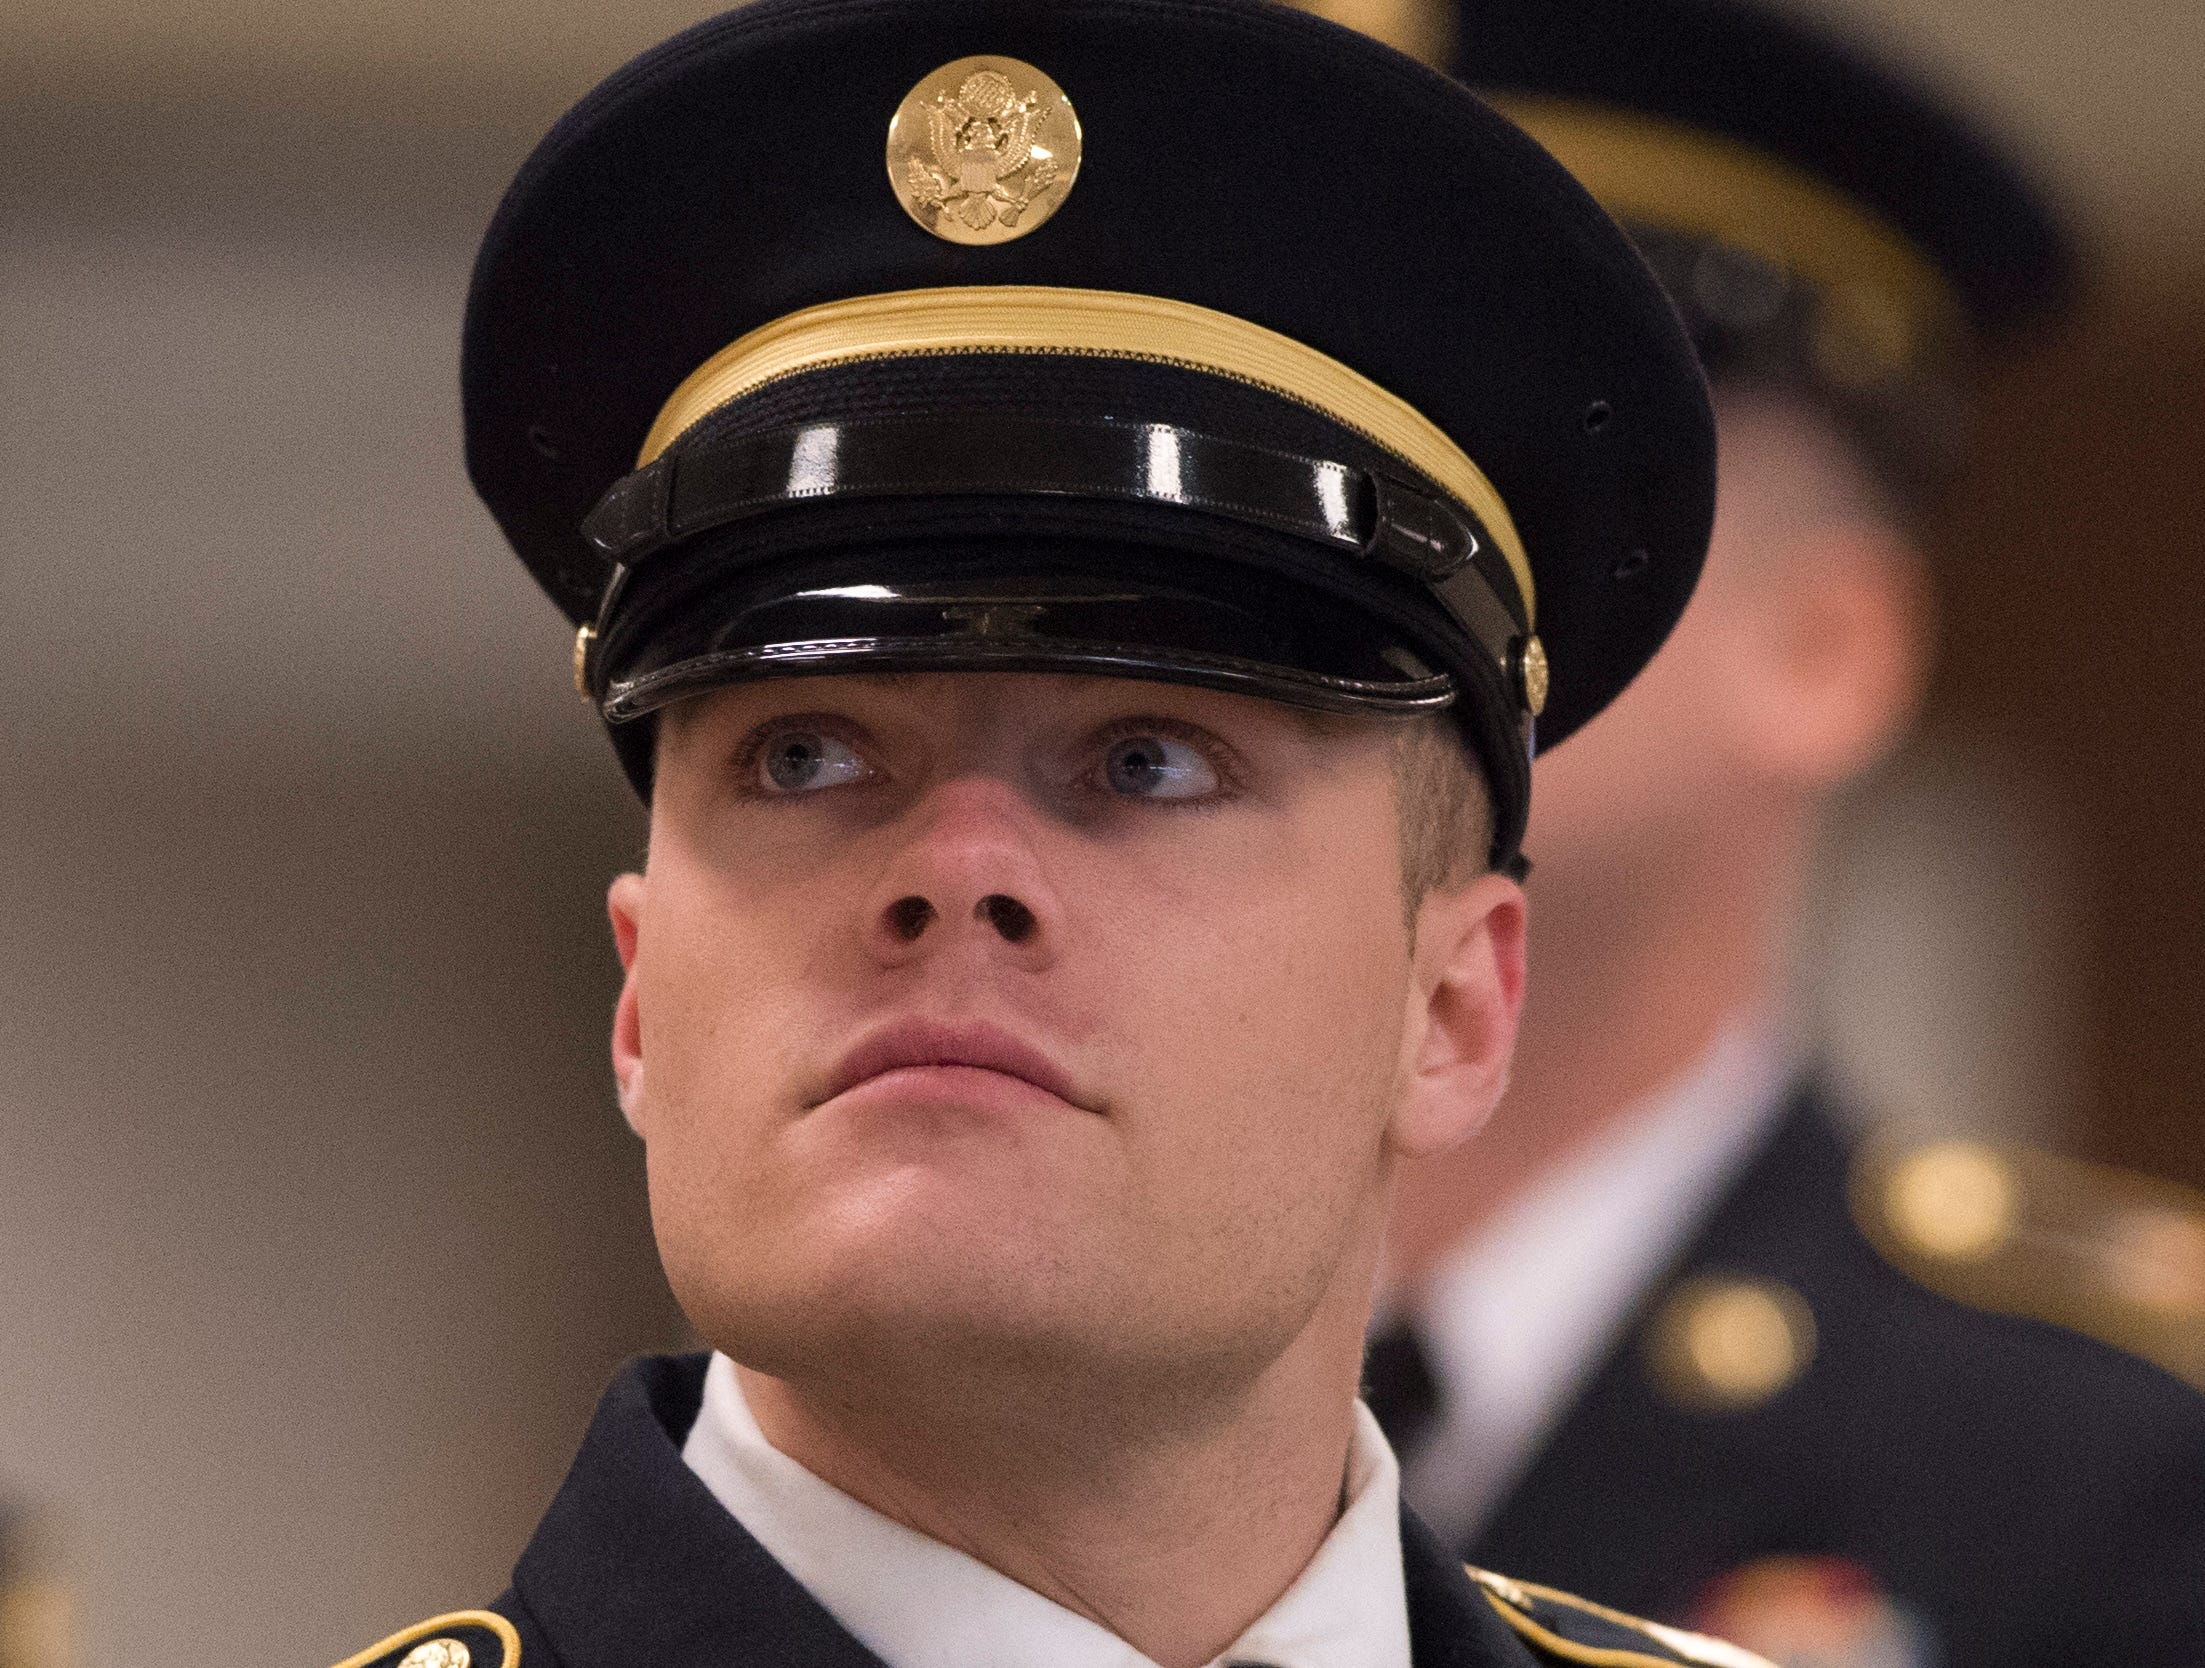 """Private First Class Jagger Wolf looks up at a tv in the lobby of Christian Fellowship Church showing the """"Celebration of Life"""" ceremony for Army Sgt. Drew Watters in Evansville, Ind., Wednesday afternoon, Nov. 14, 2018. The 23-year-old Evansville native was killed in a training accident in his Tacoma, Washington, base."""